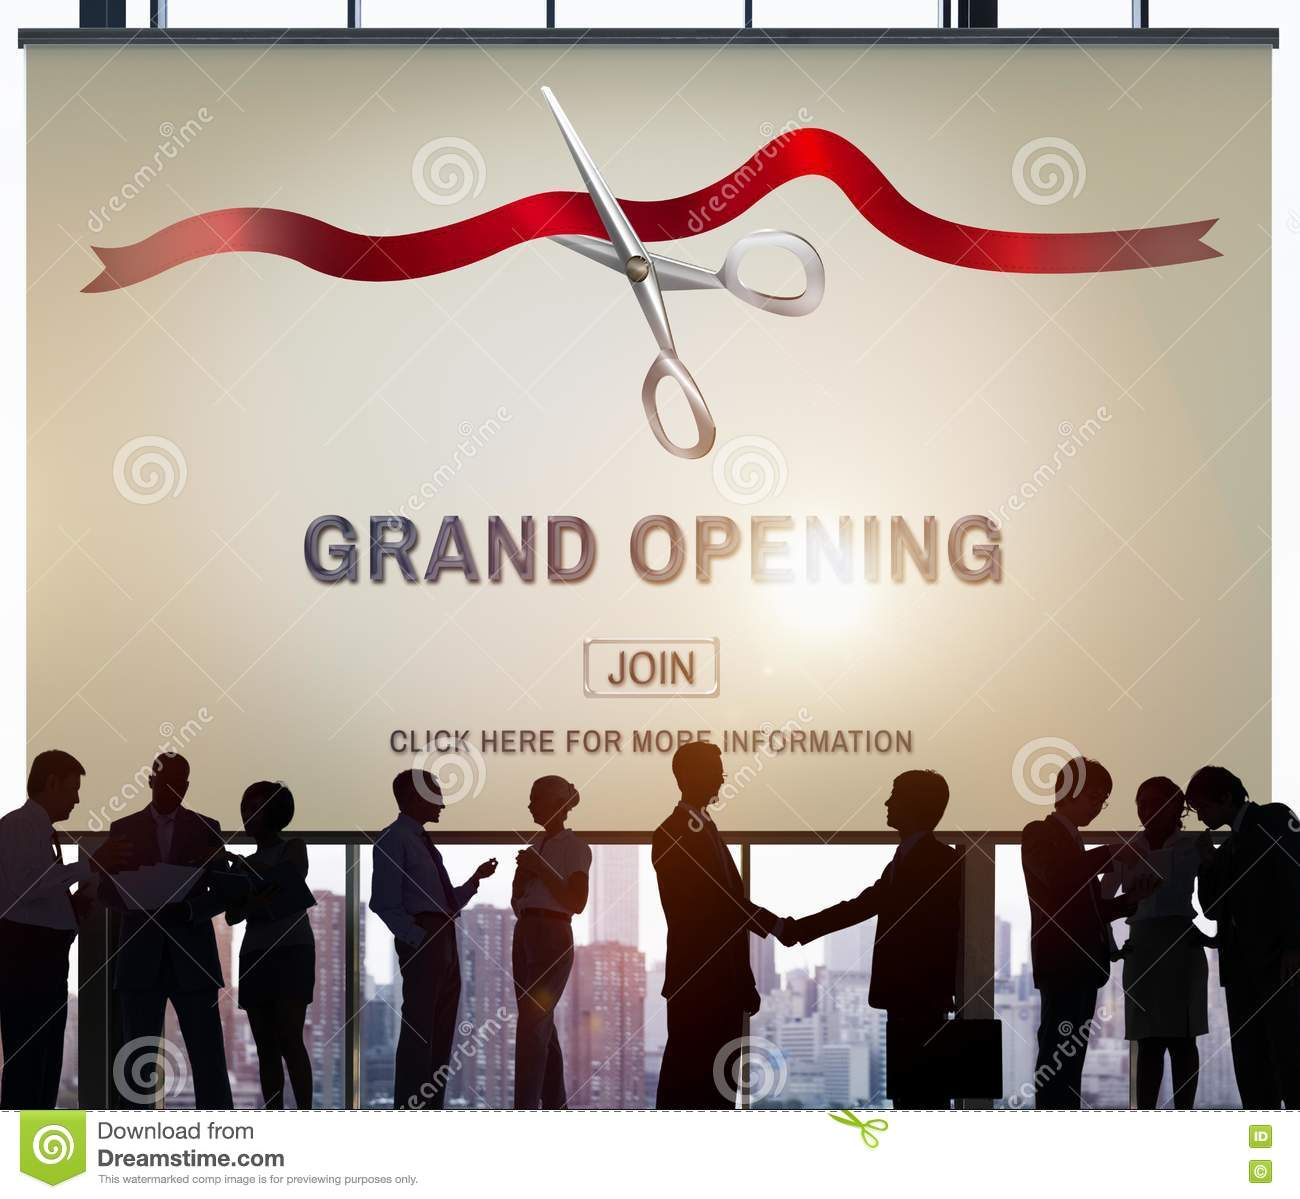 grand opening ceremony business join concept stock illustration